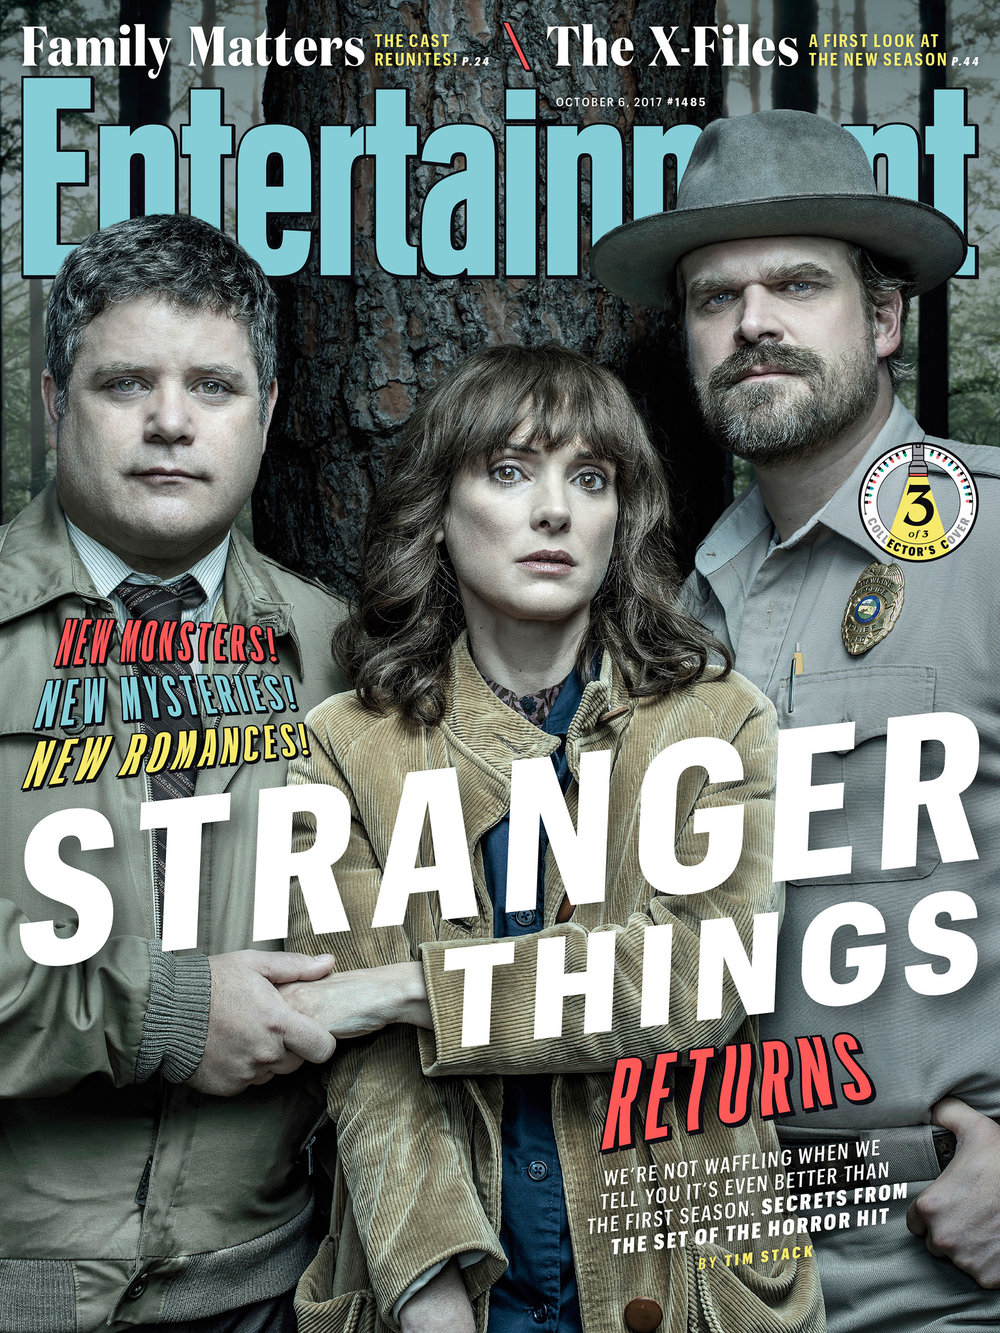 new-stranger-things-season-2-ew-covers-and-details-all-roads-lead-to-the-shadow-monster4